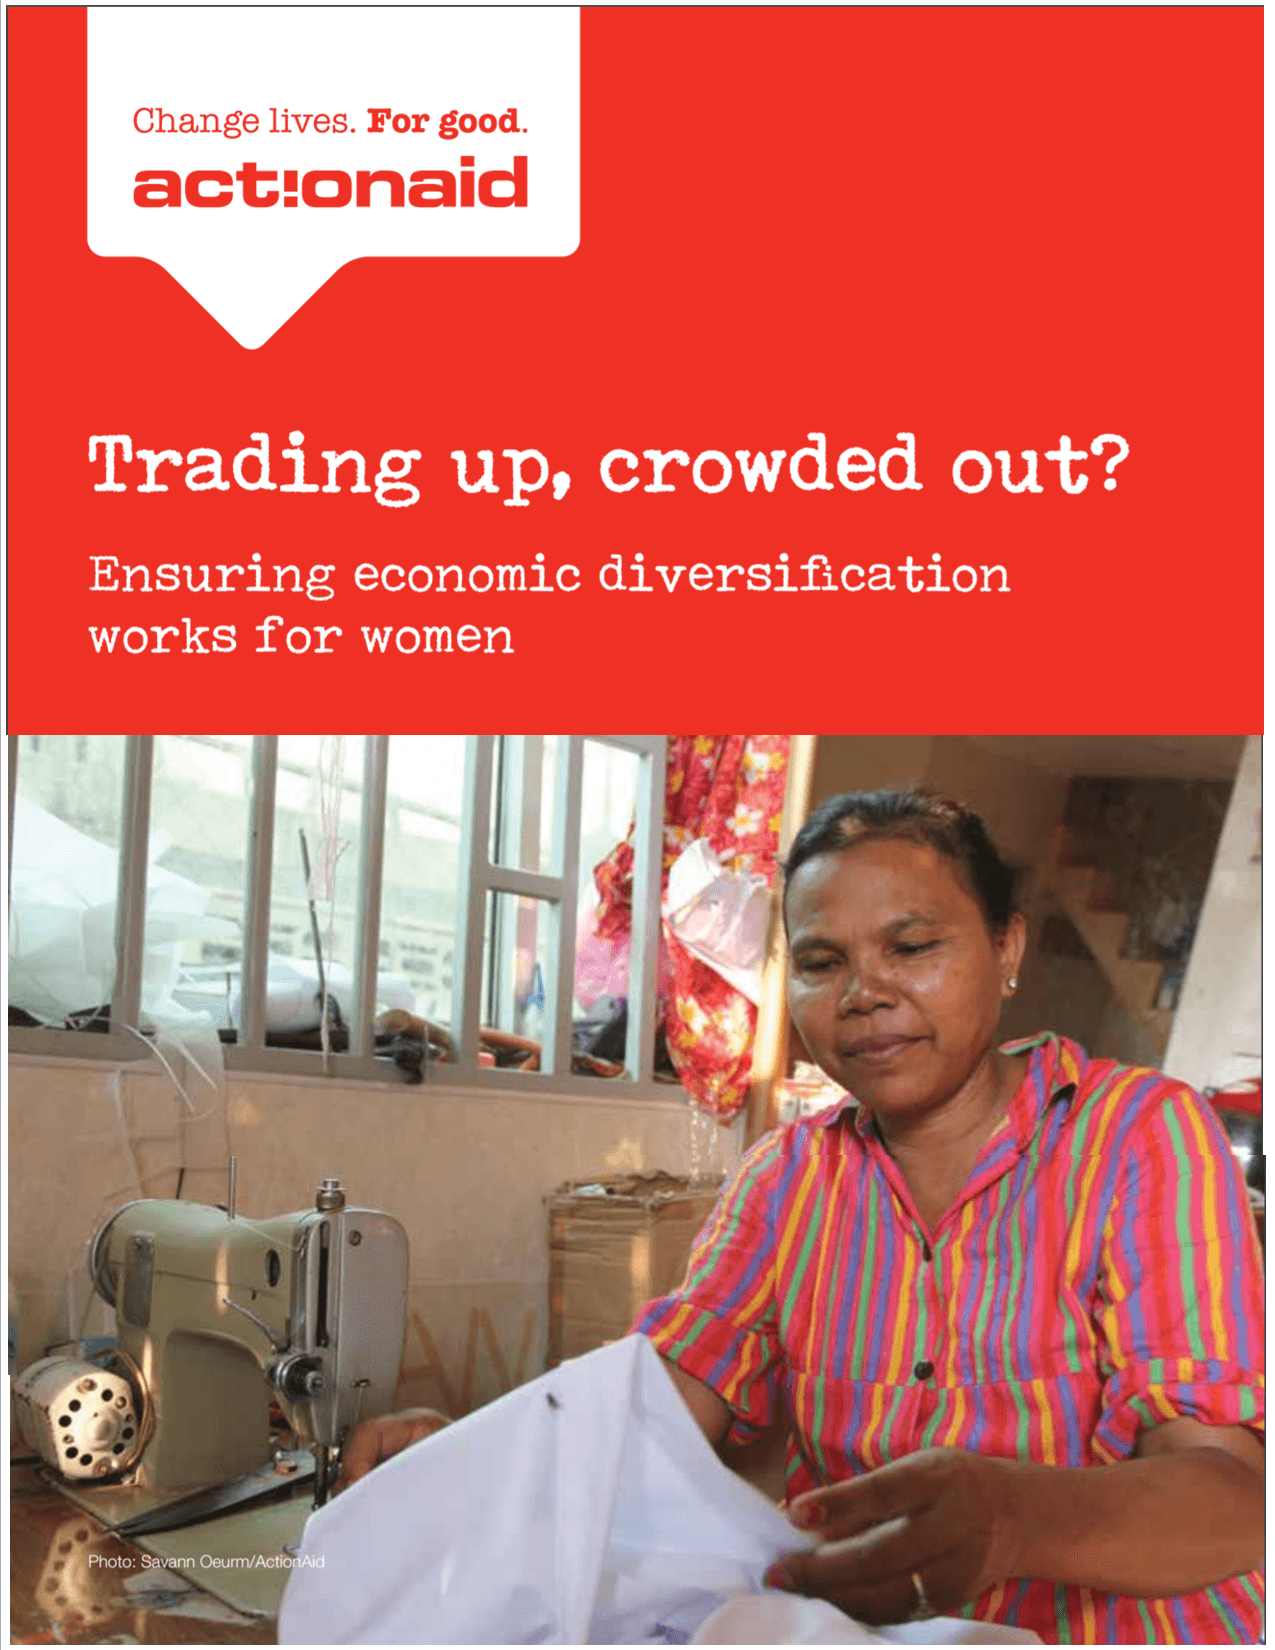 Trading up, crowded out? Ensuring economic diversification works for women